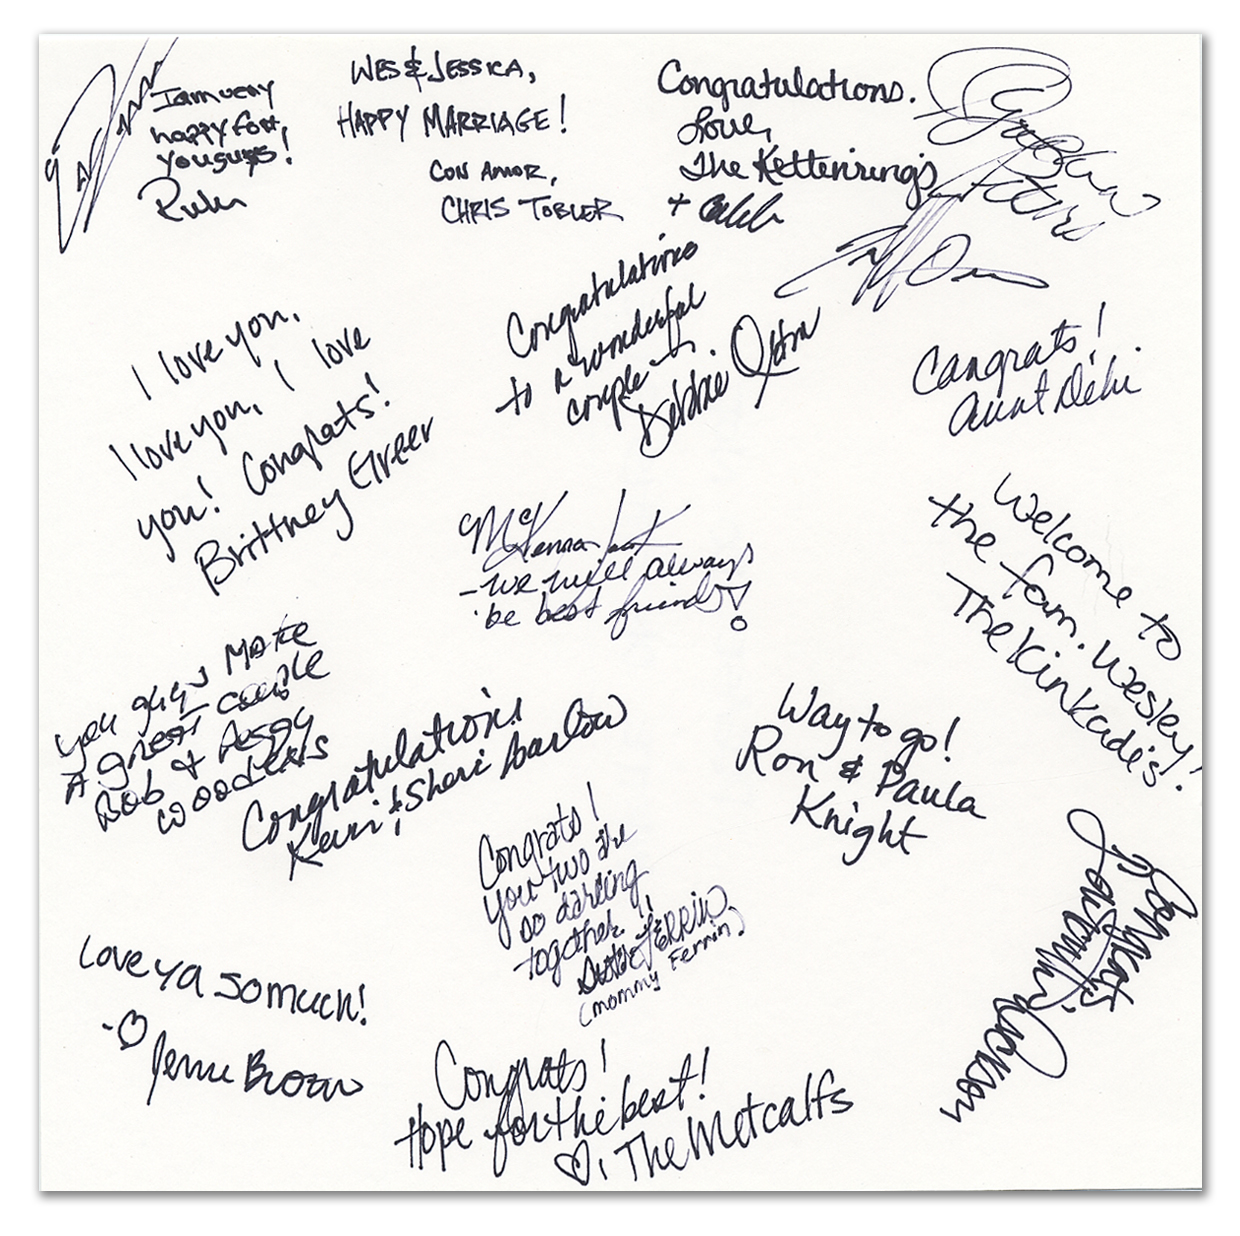 Guest Book - Signature Page Sample